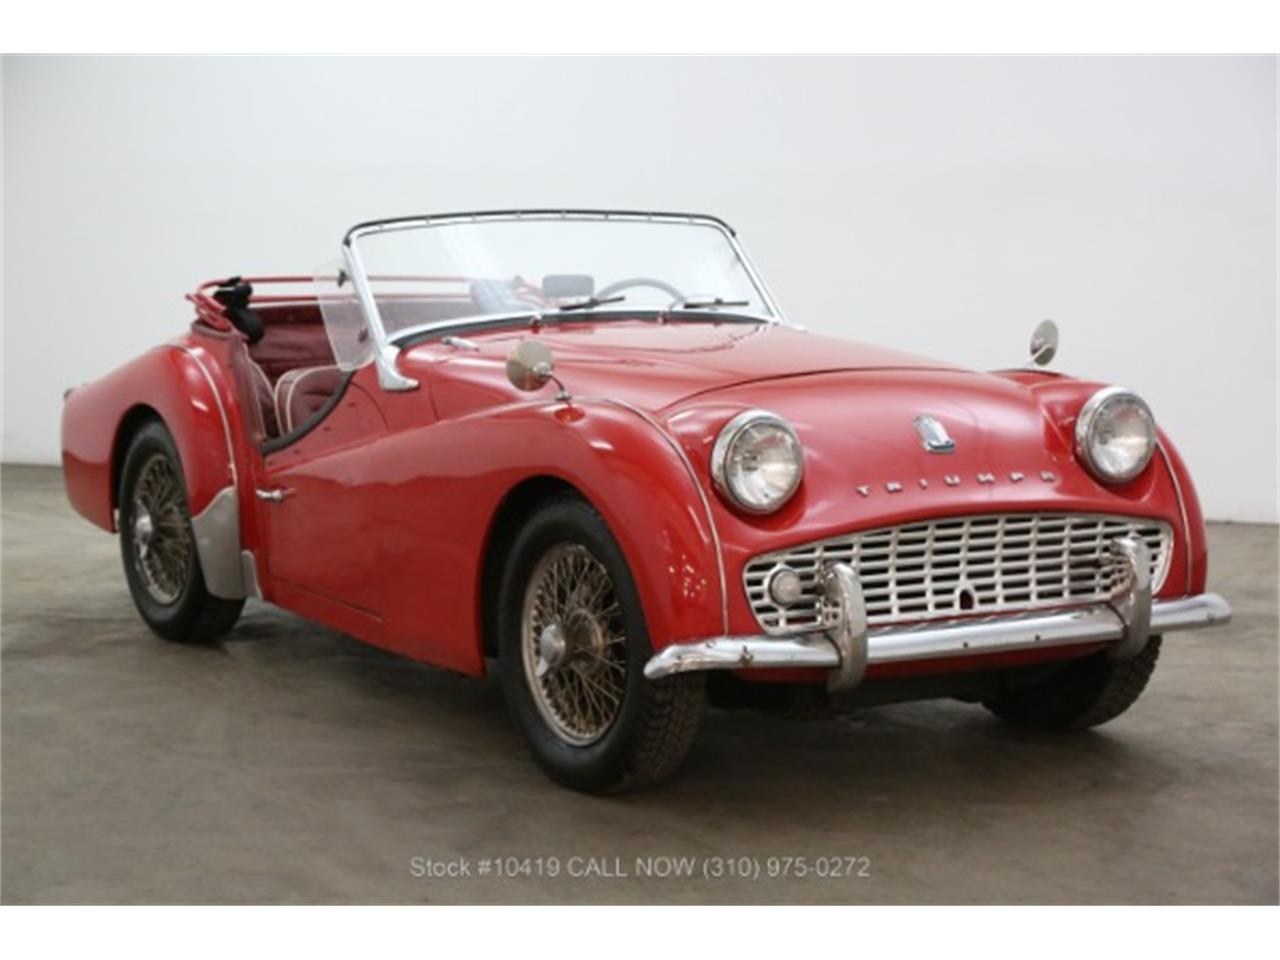 For Sale: 1960 Triumph TR3 in Beverly Hills, California